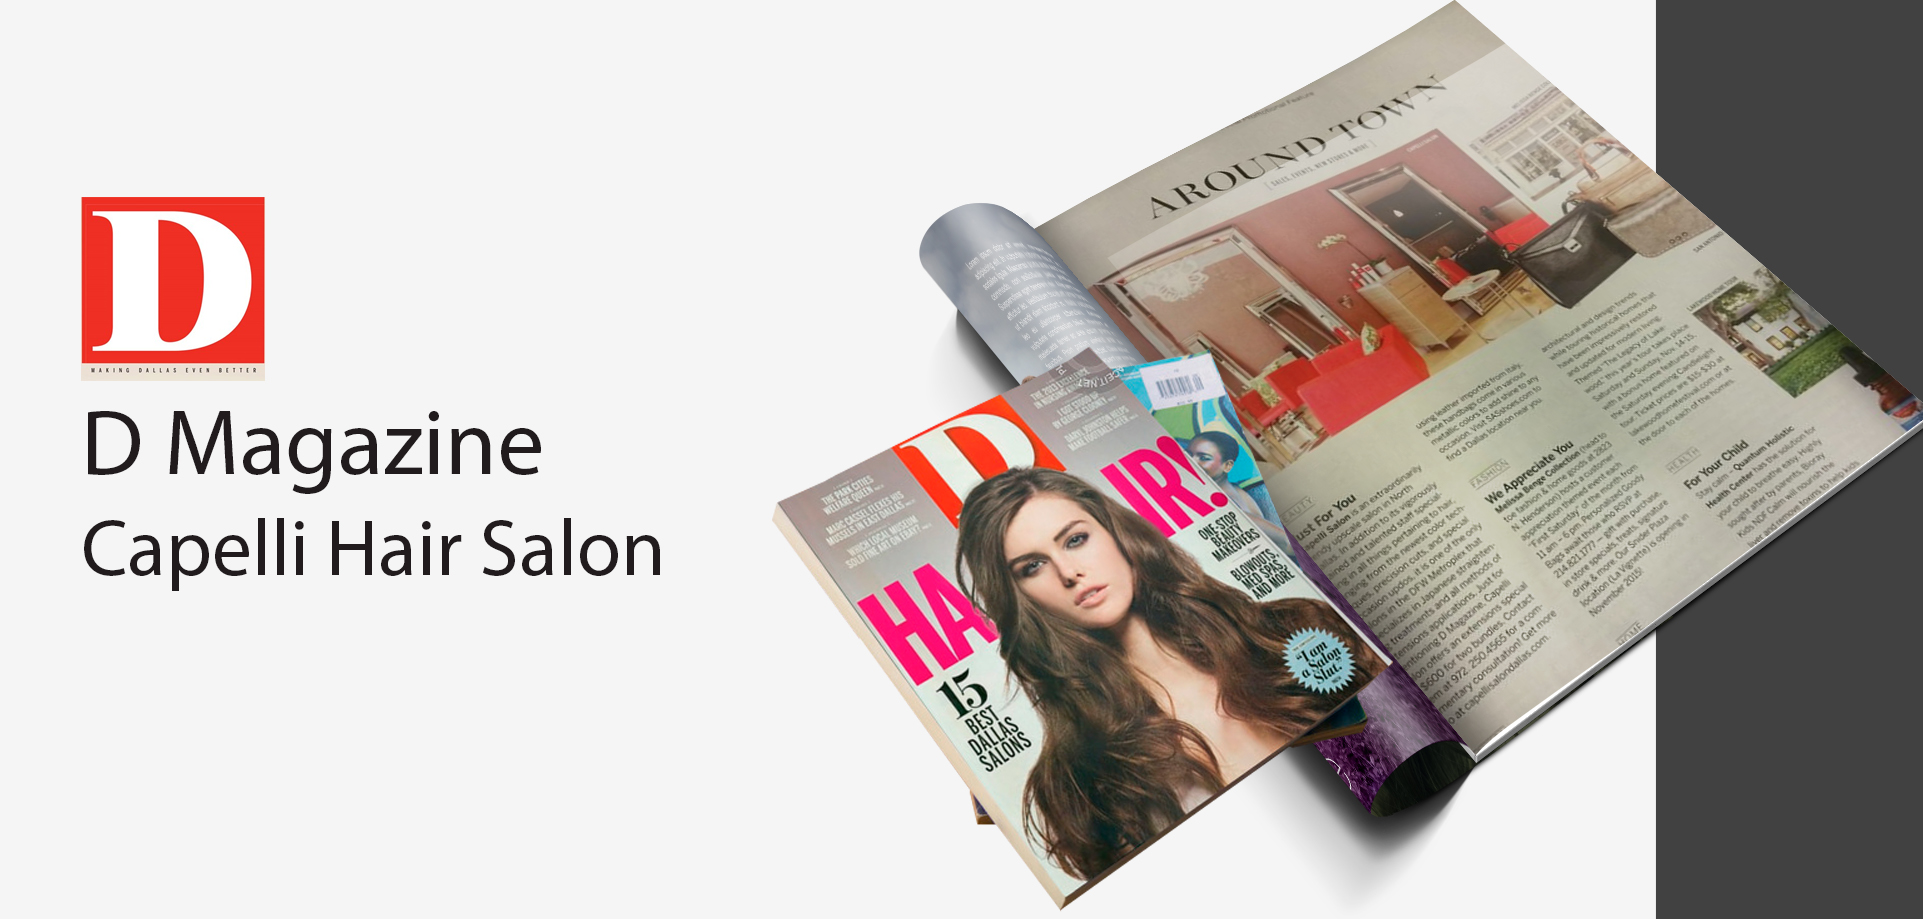 Capelli Hair Salon in D Magazine